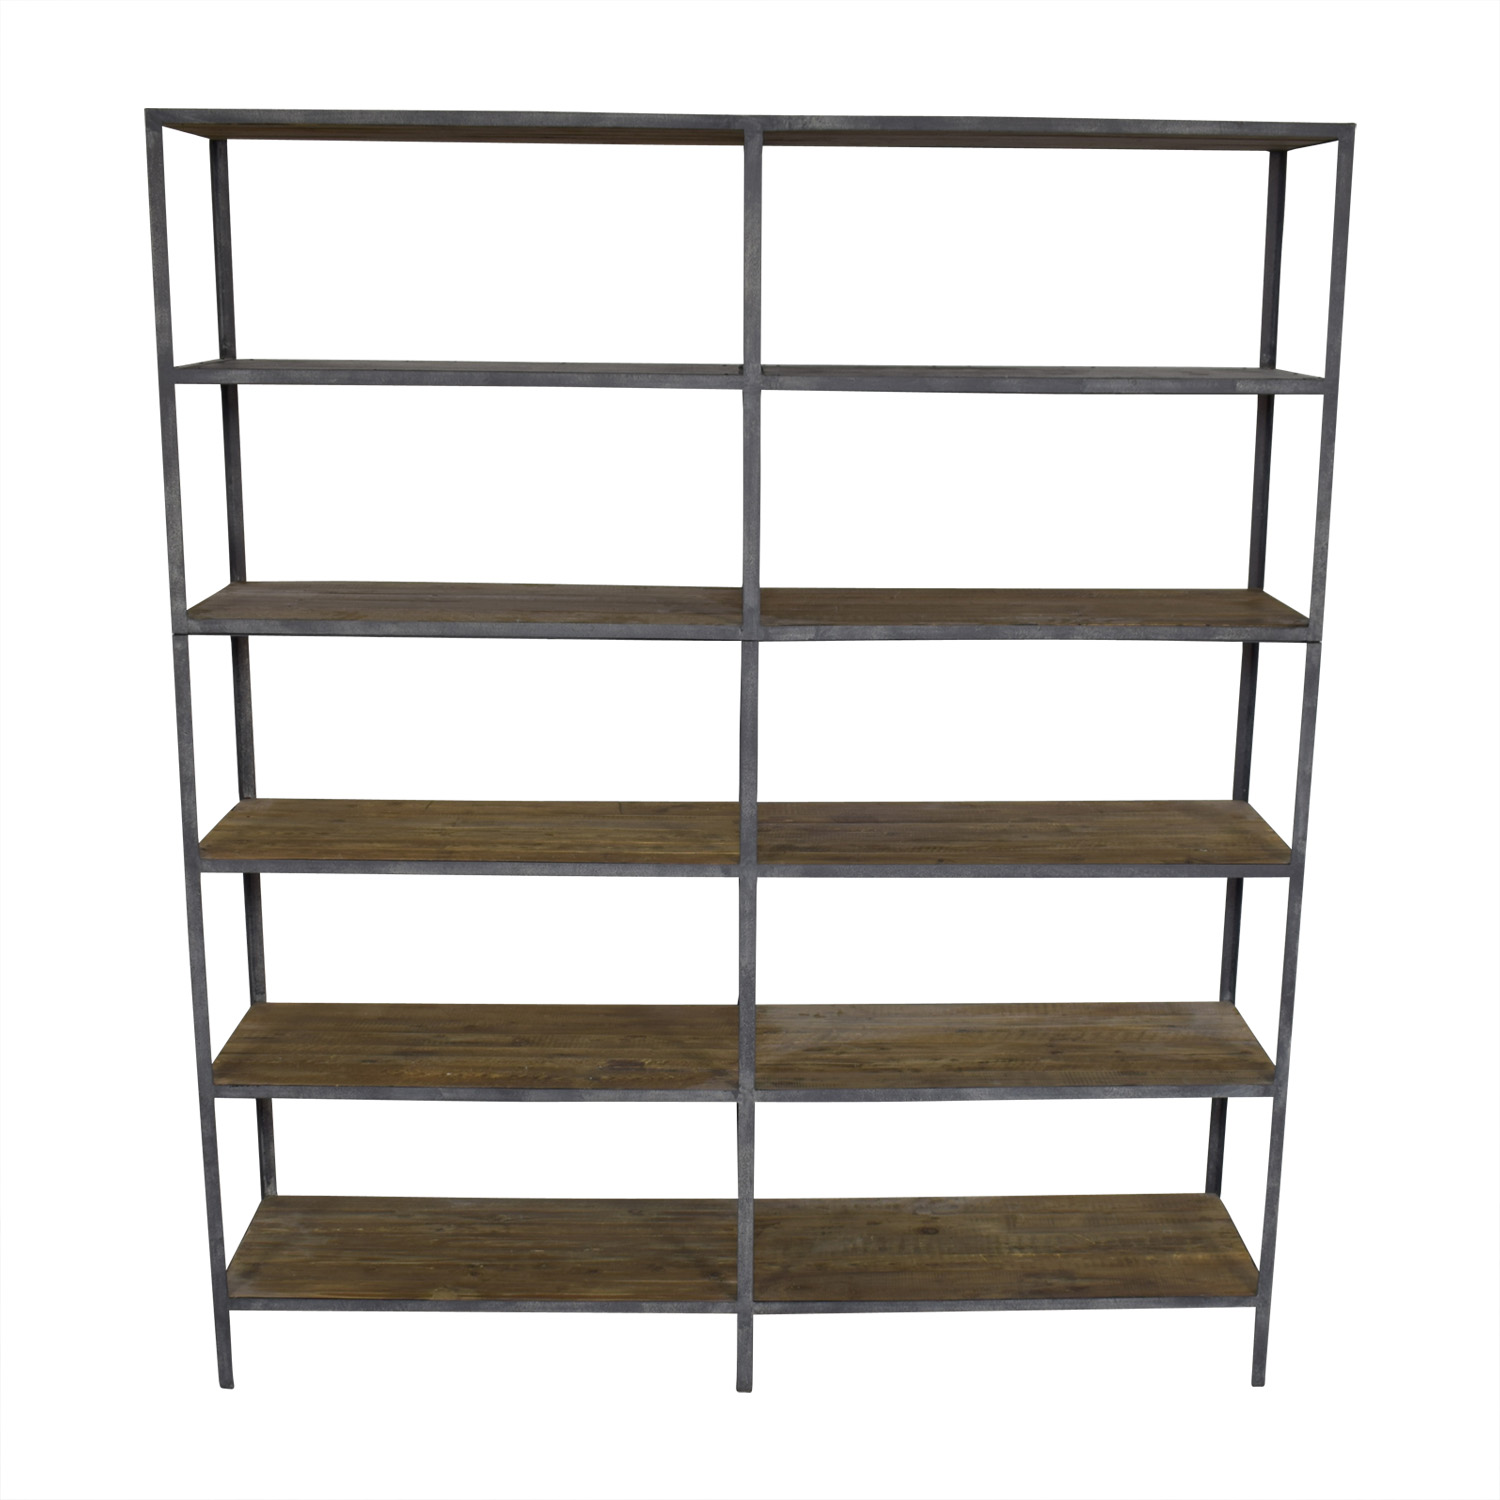 Restoration Hardware Vintage Industrial Double Shelving / Storage